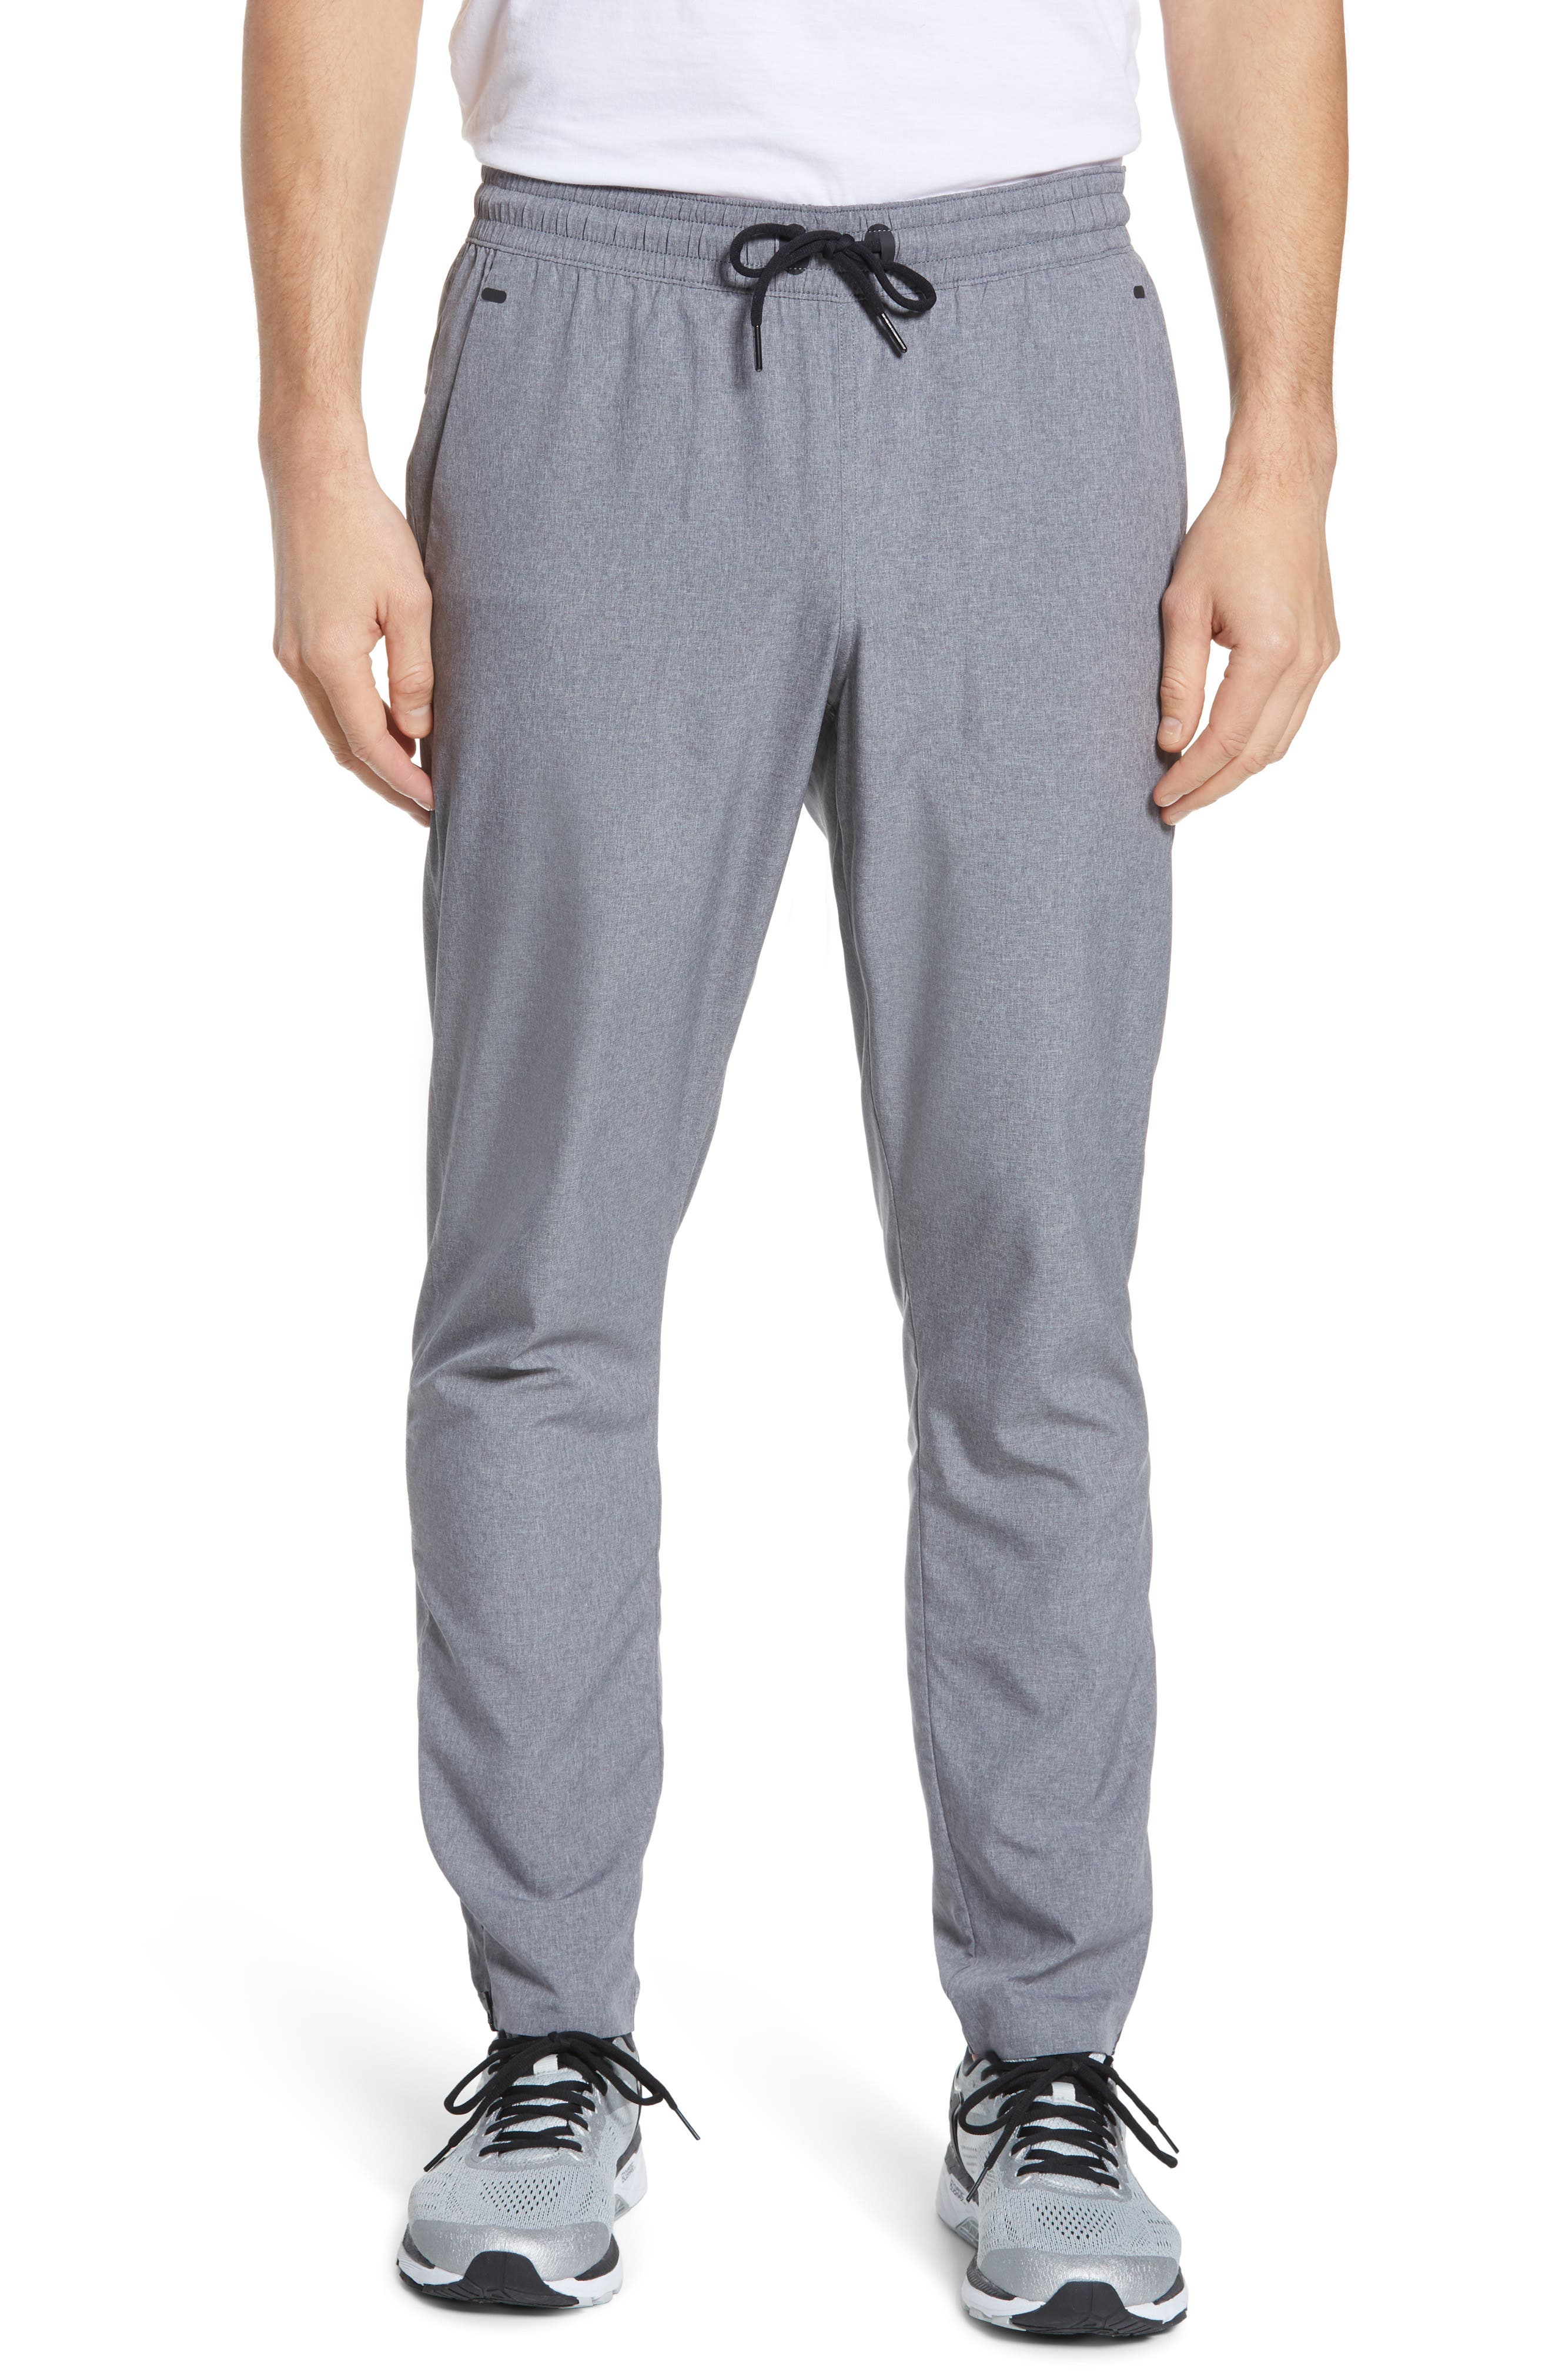 Zella Tapered Slim Fit Stretch Woven Sweatpants